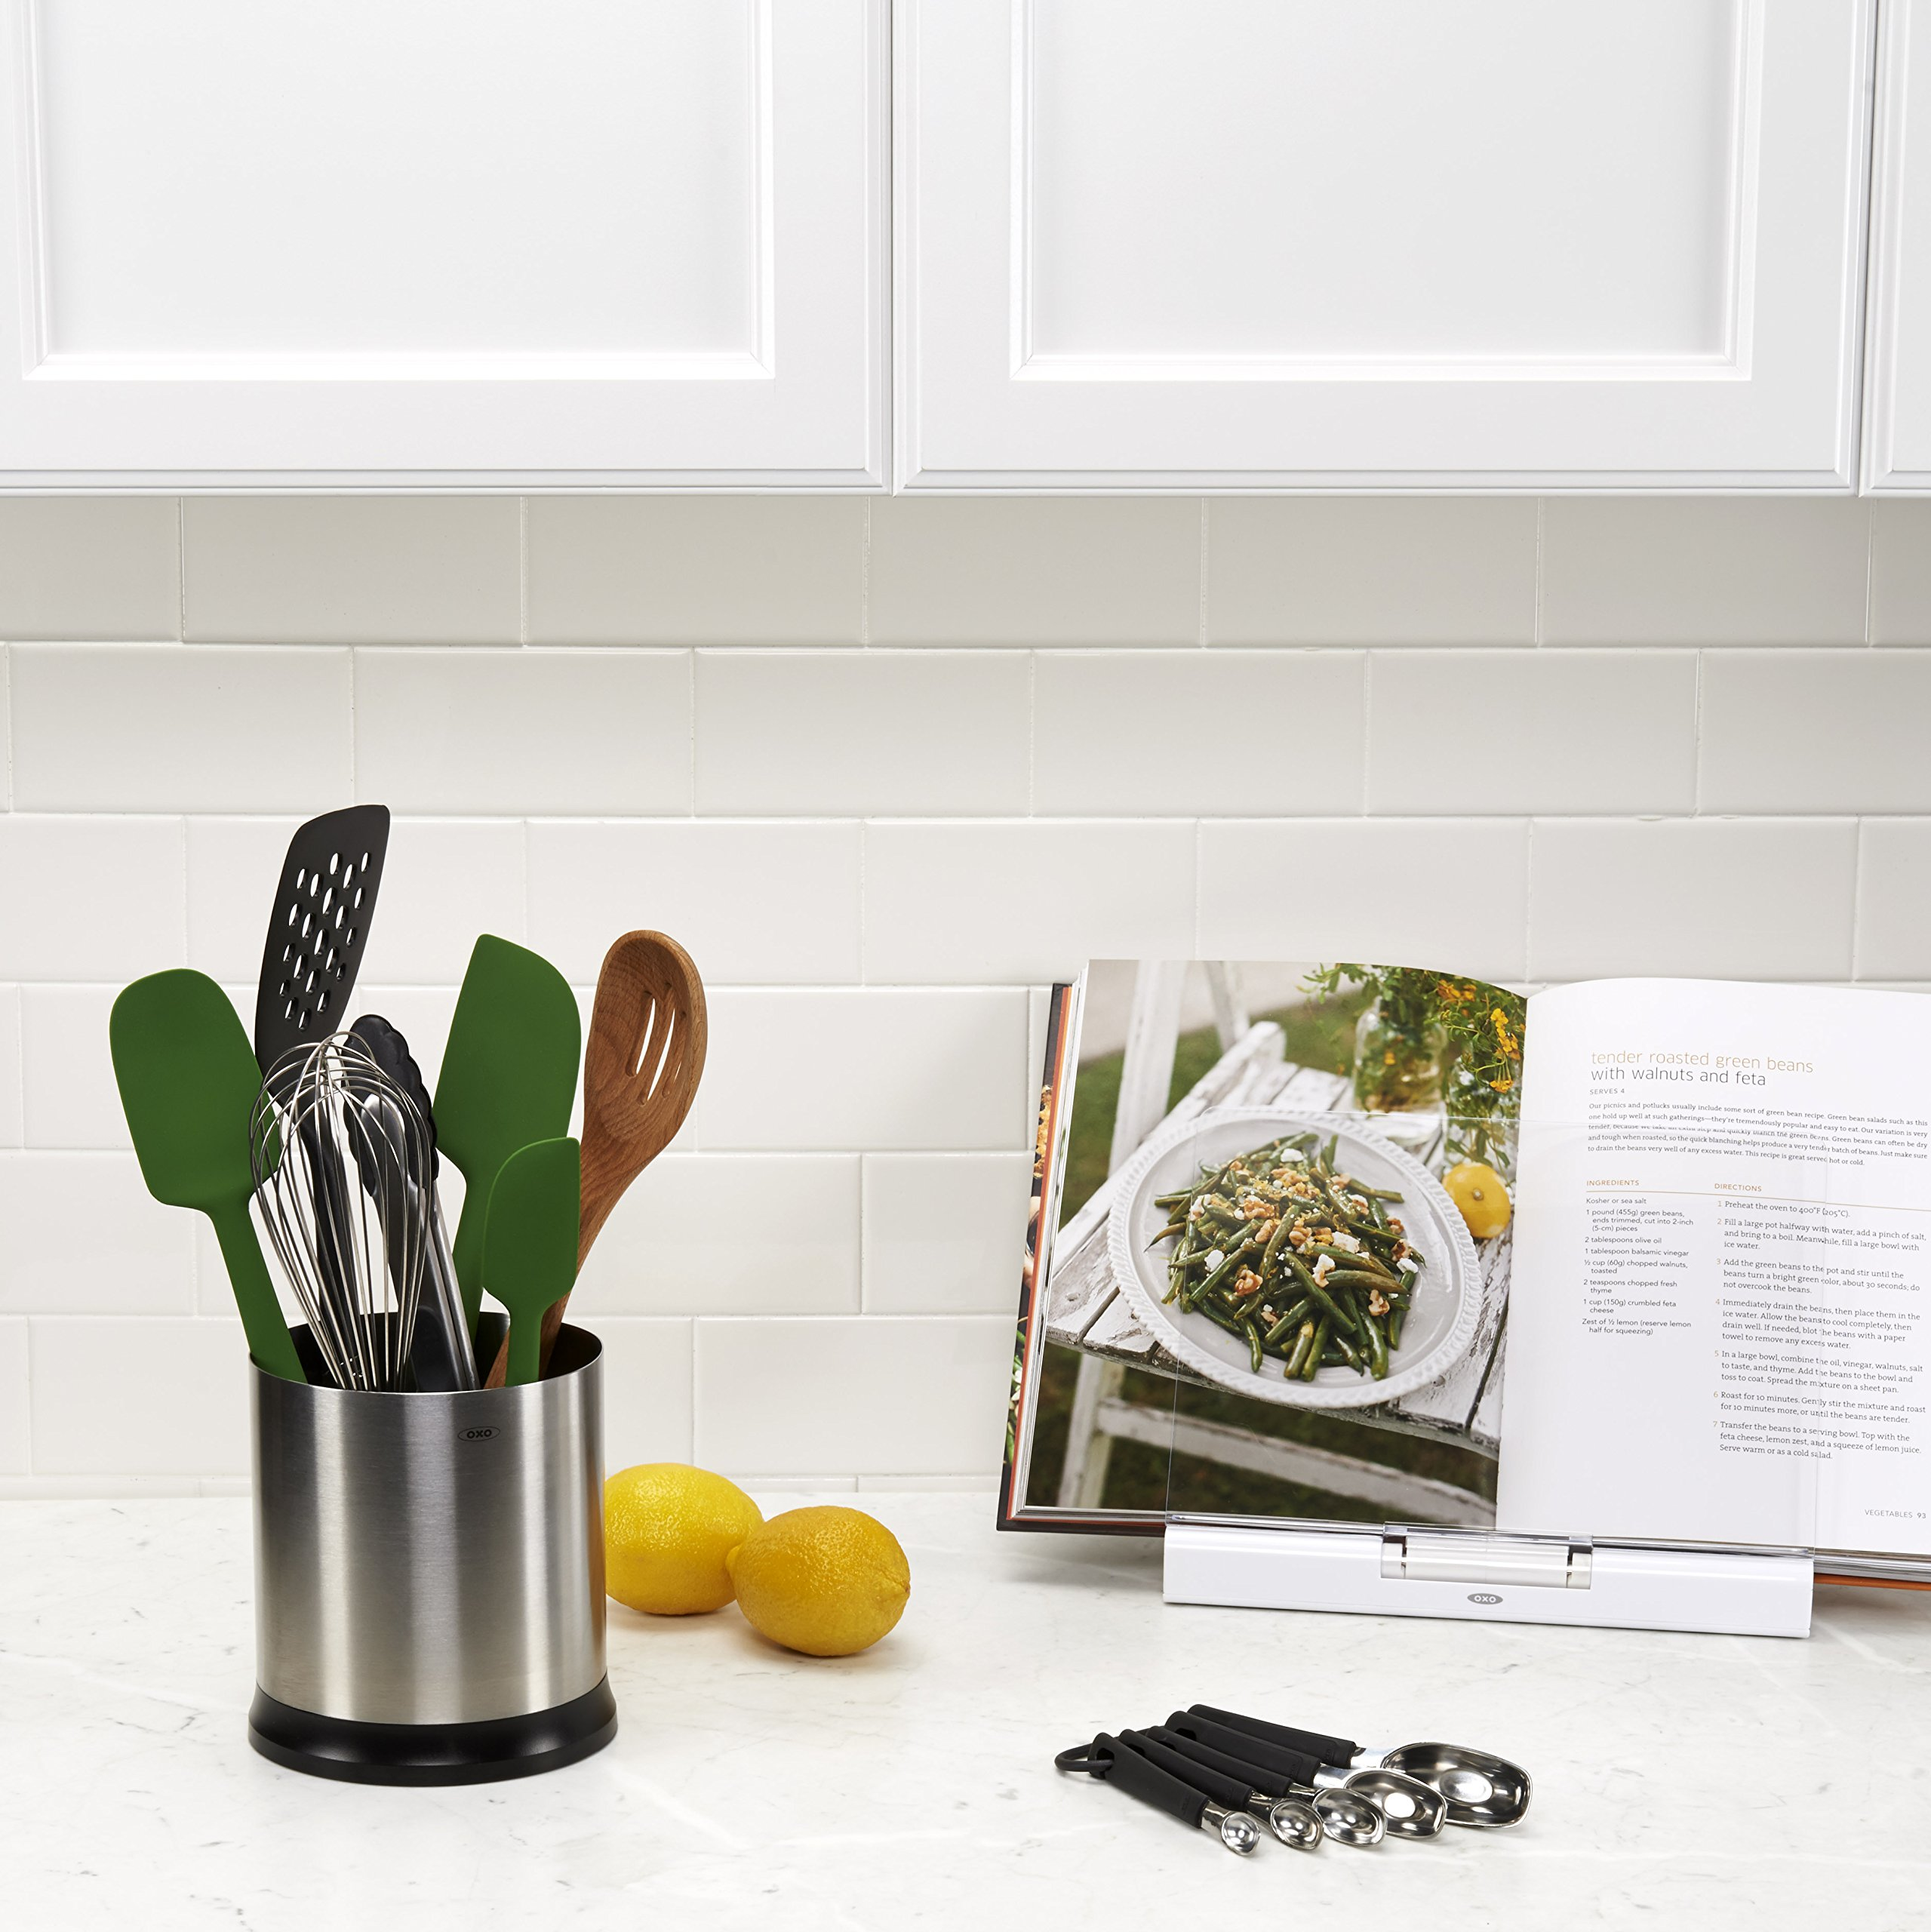 OXO Good Grips 3-Piece Utensil Set by OXO (Image #4)